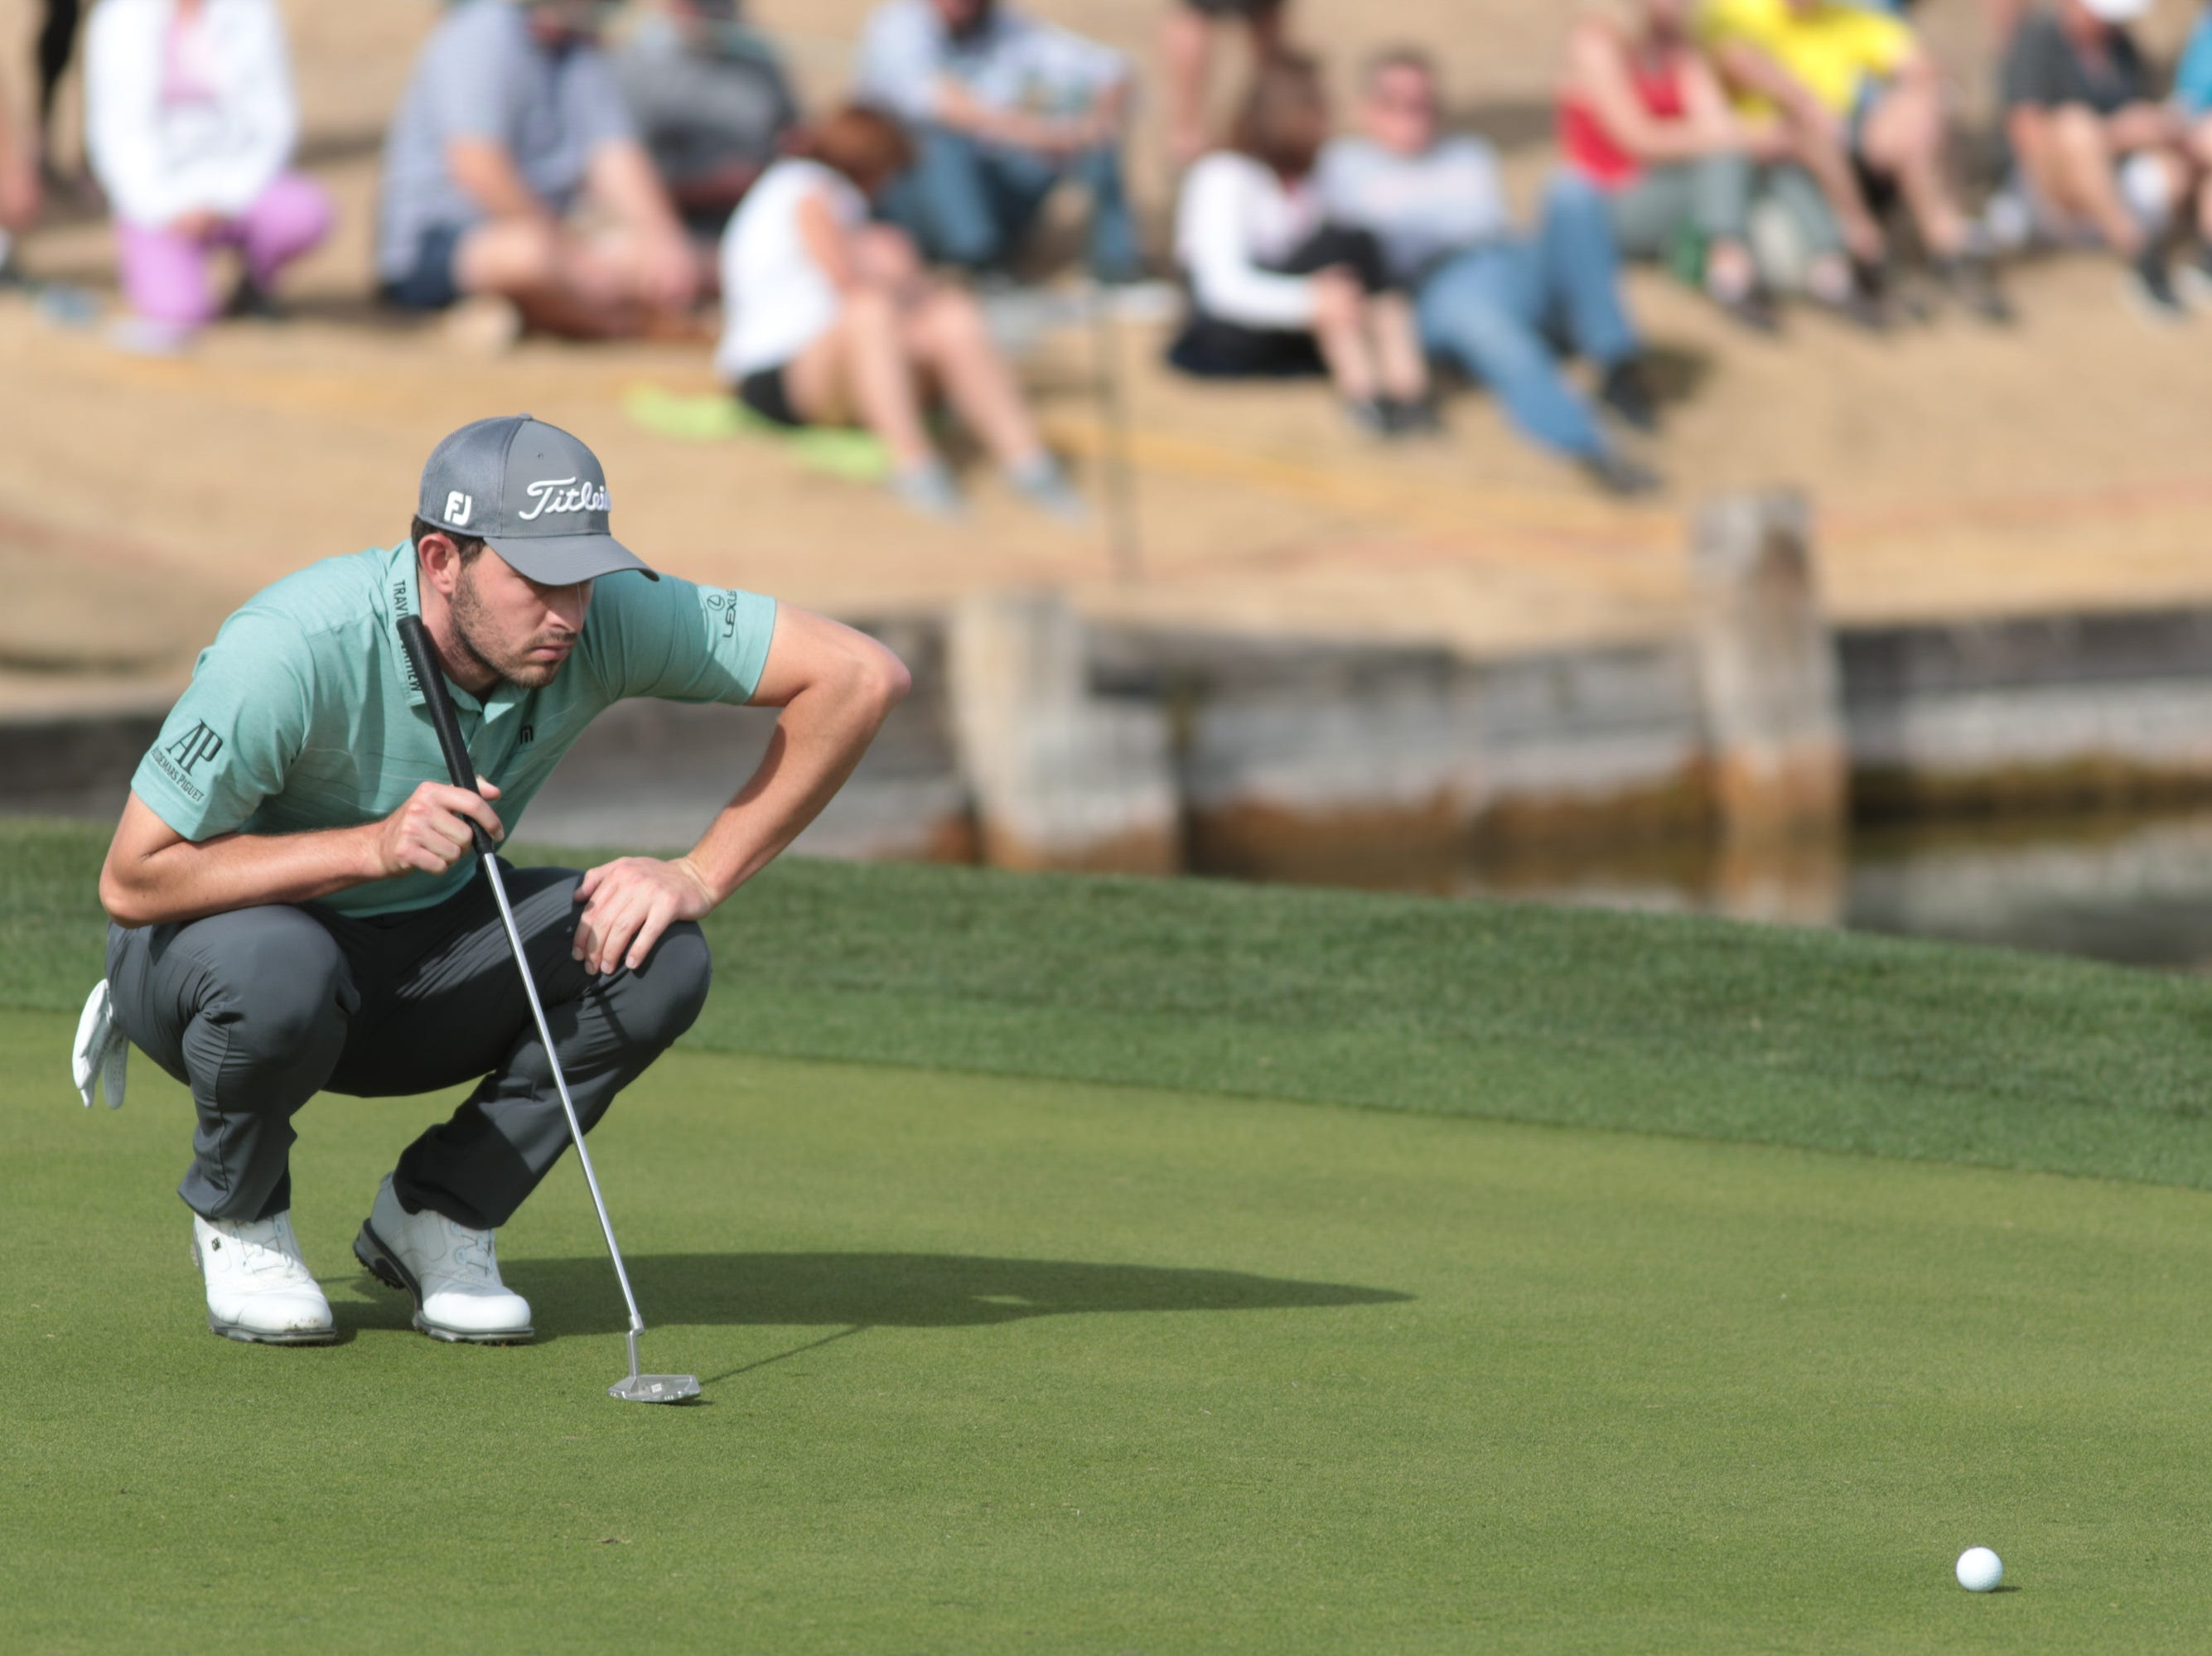 Patrick Cantlay putts on the 7th hole of the 2019 Desert Classic, Sunday, January 20, 2019.